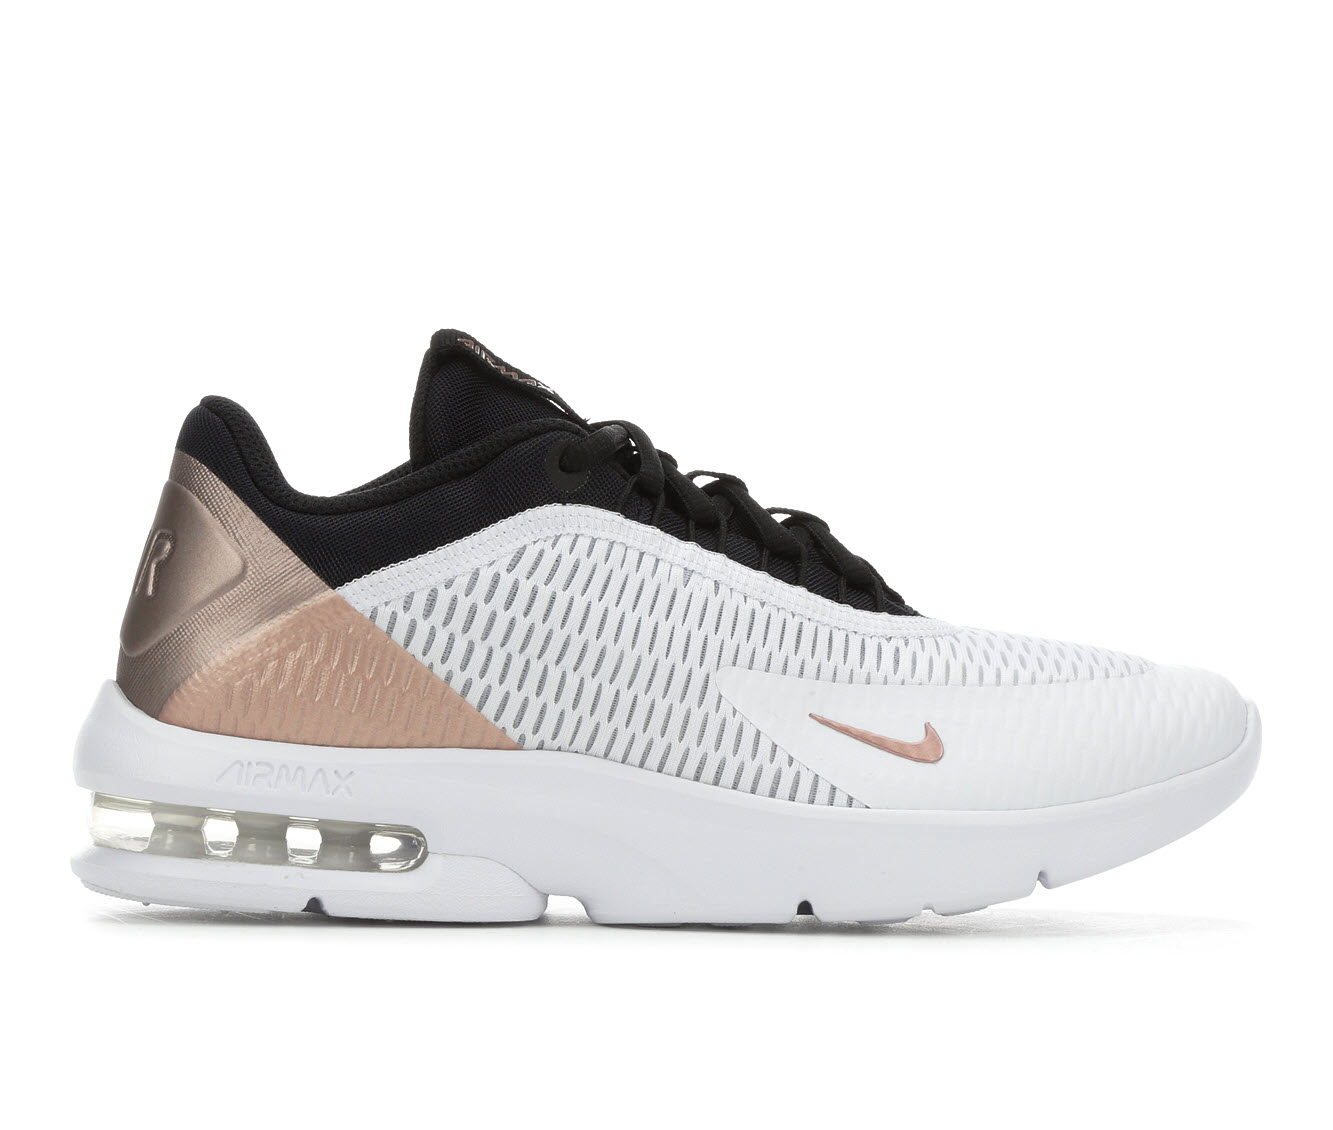 Nike Air Max Advantage 3 Women's Athletic Shoe (White)